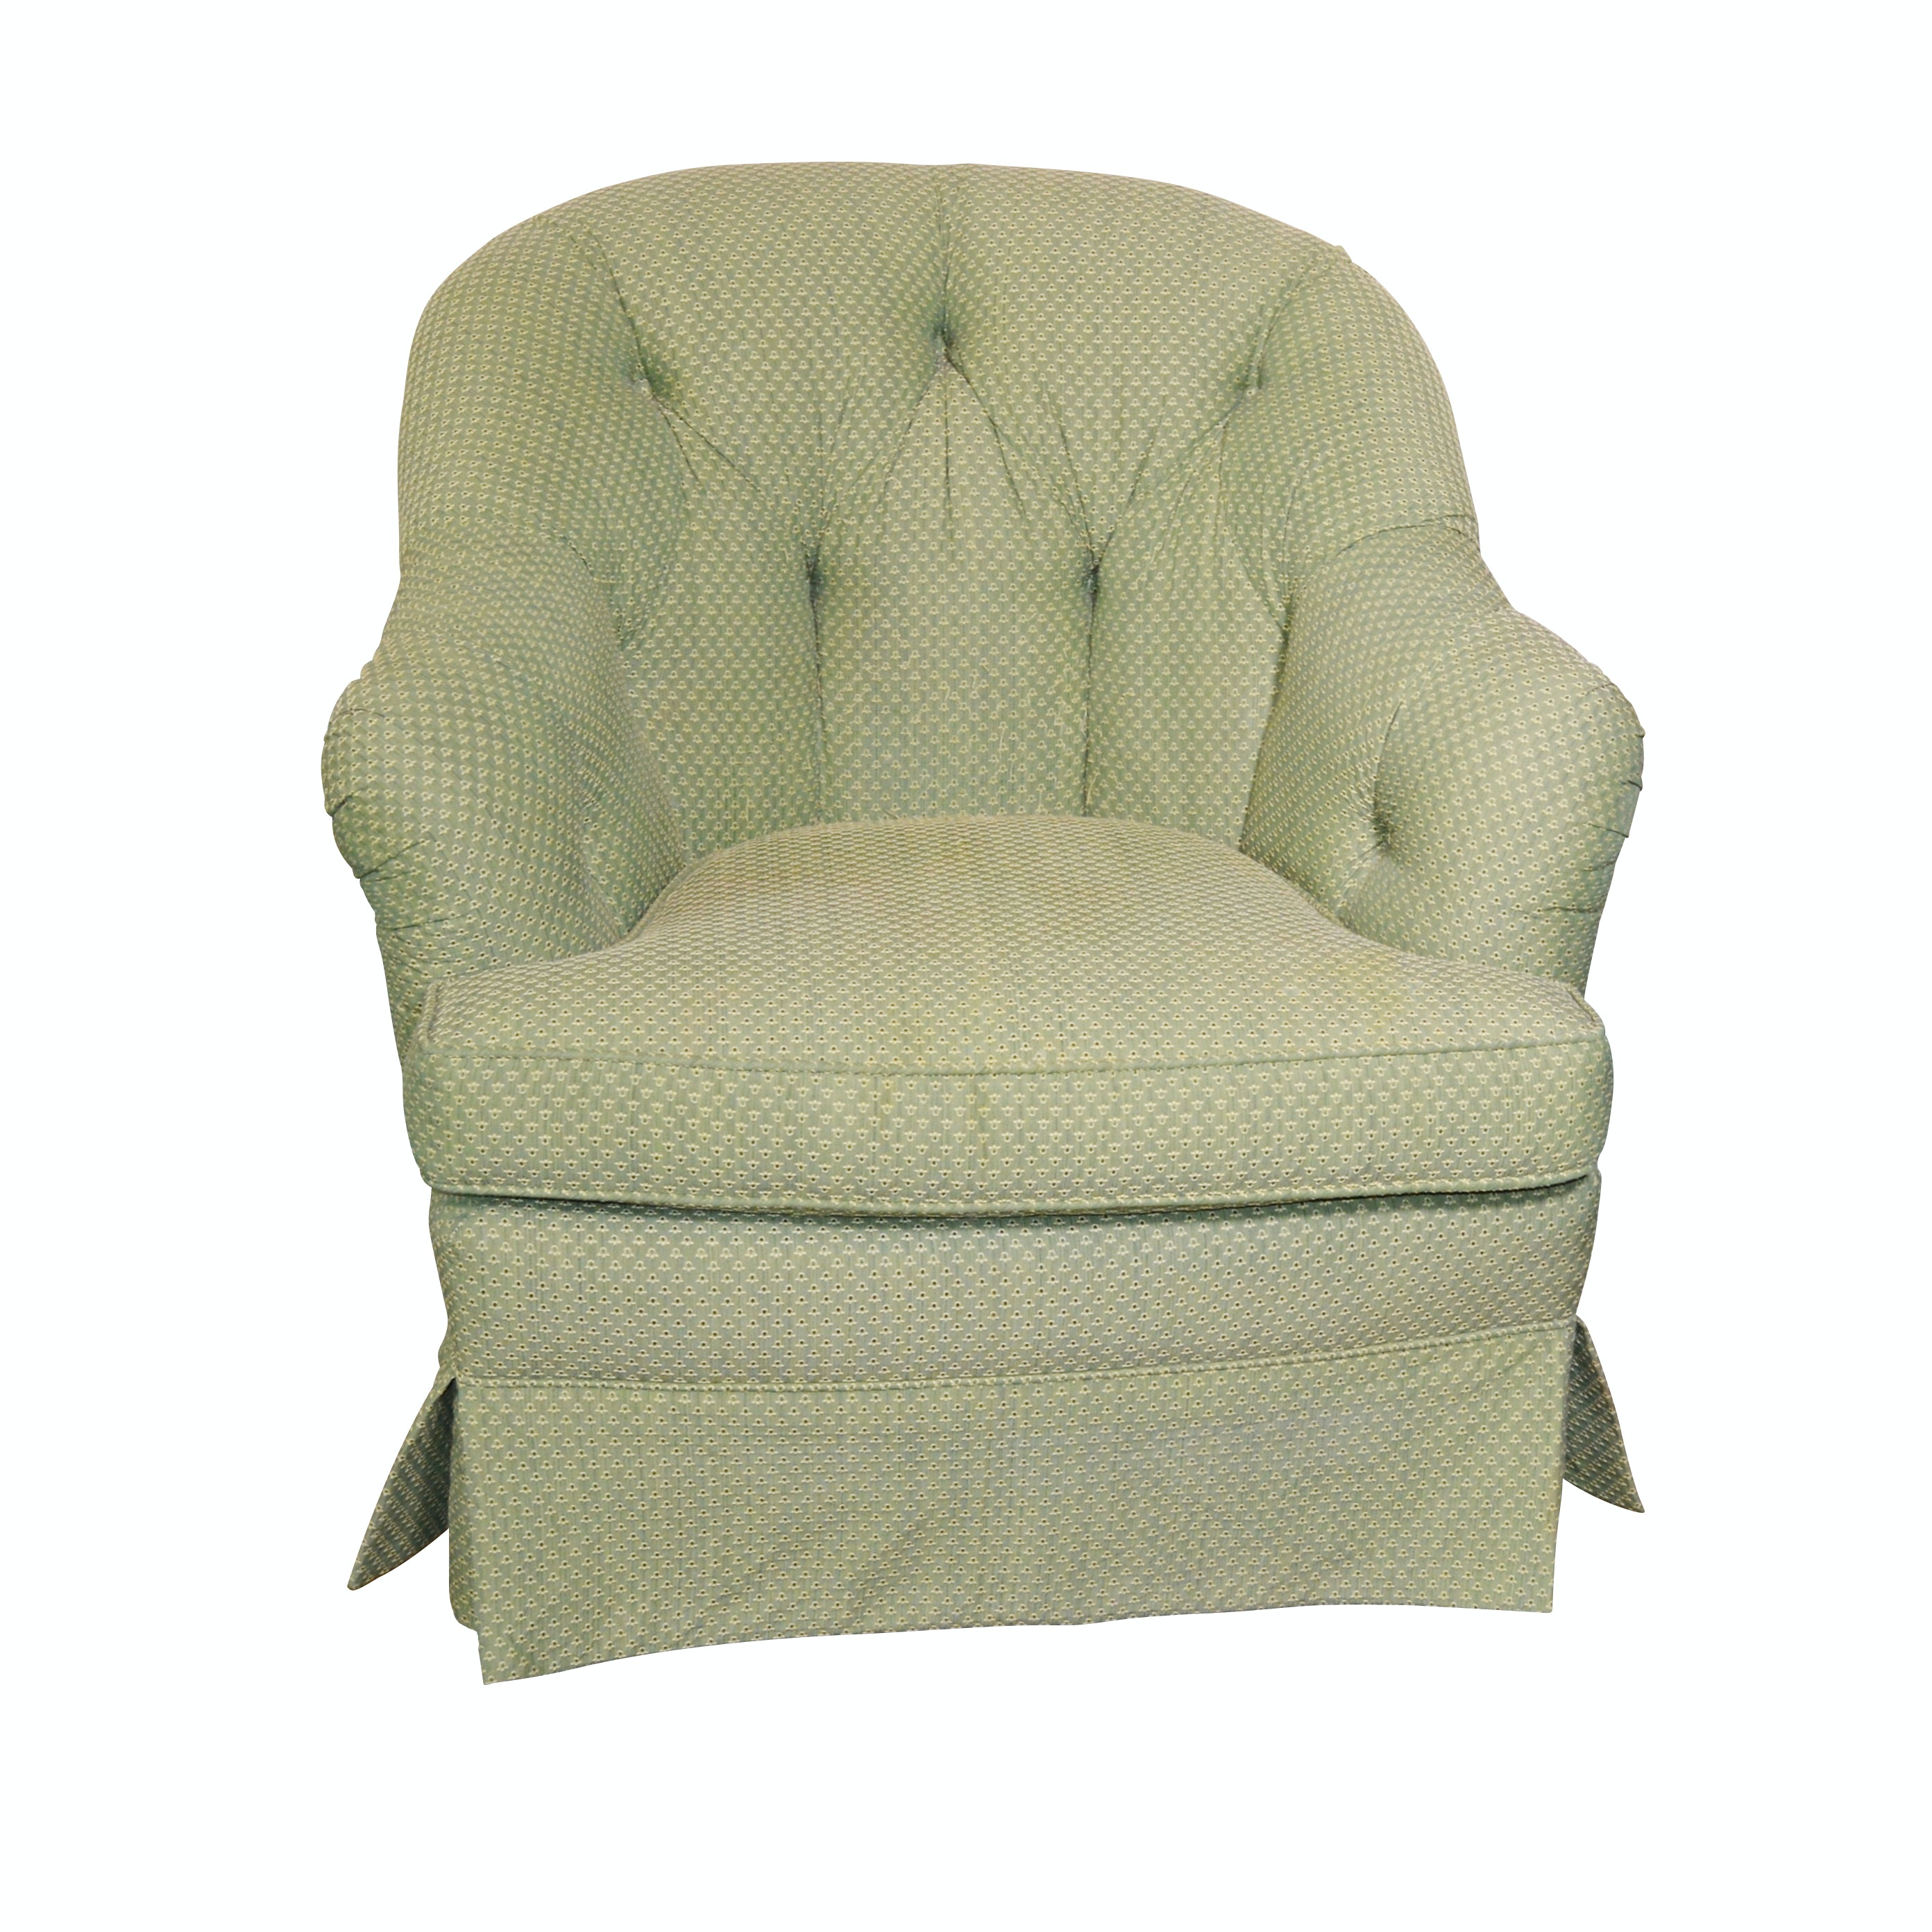 Tufted Back Upholstered Club Chair, Late 20th Century